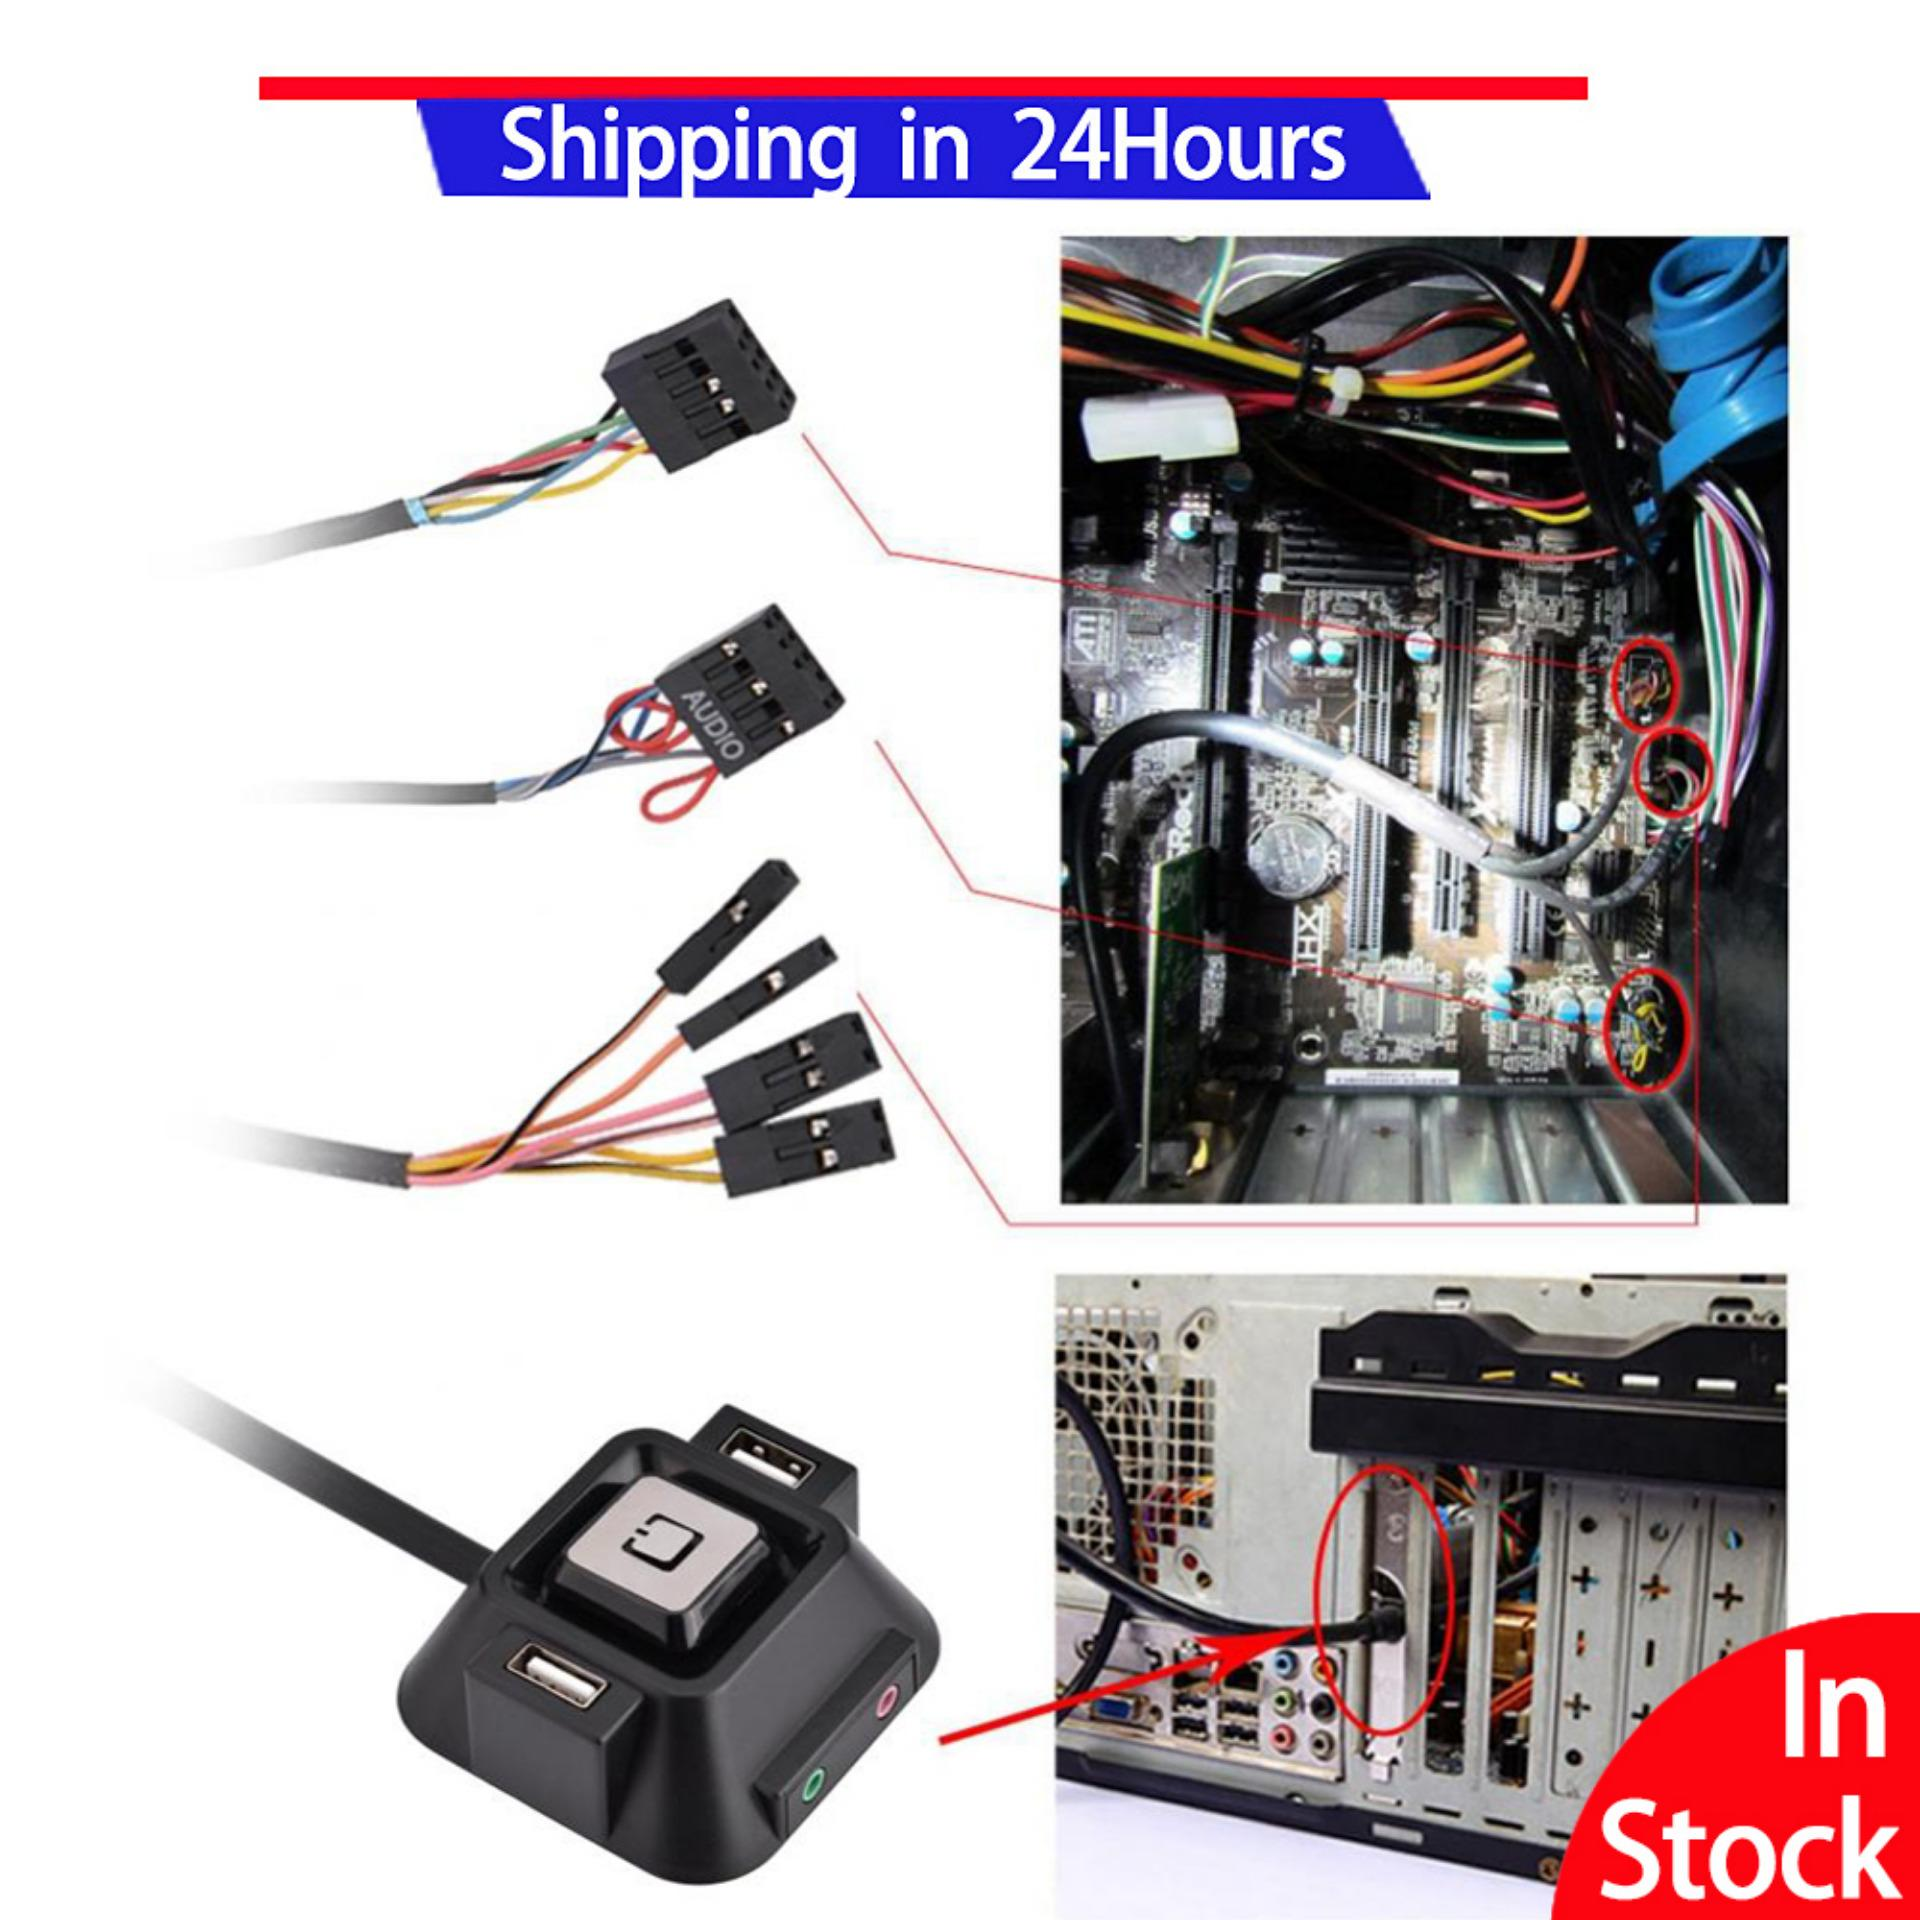 Computer Switches For Sale Pc Prices Brands Specs In Split Ether Cable Together With Patch Panel Wiring Also Manual Sobre Desktop Case Switch Dual Usb Ports Power Reset Button Audio Microphone Port Intl